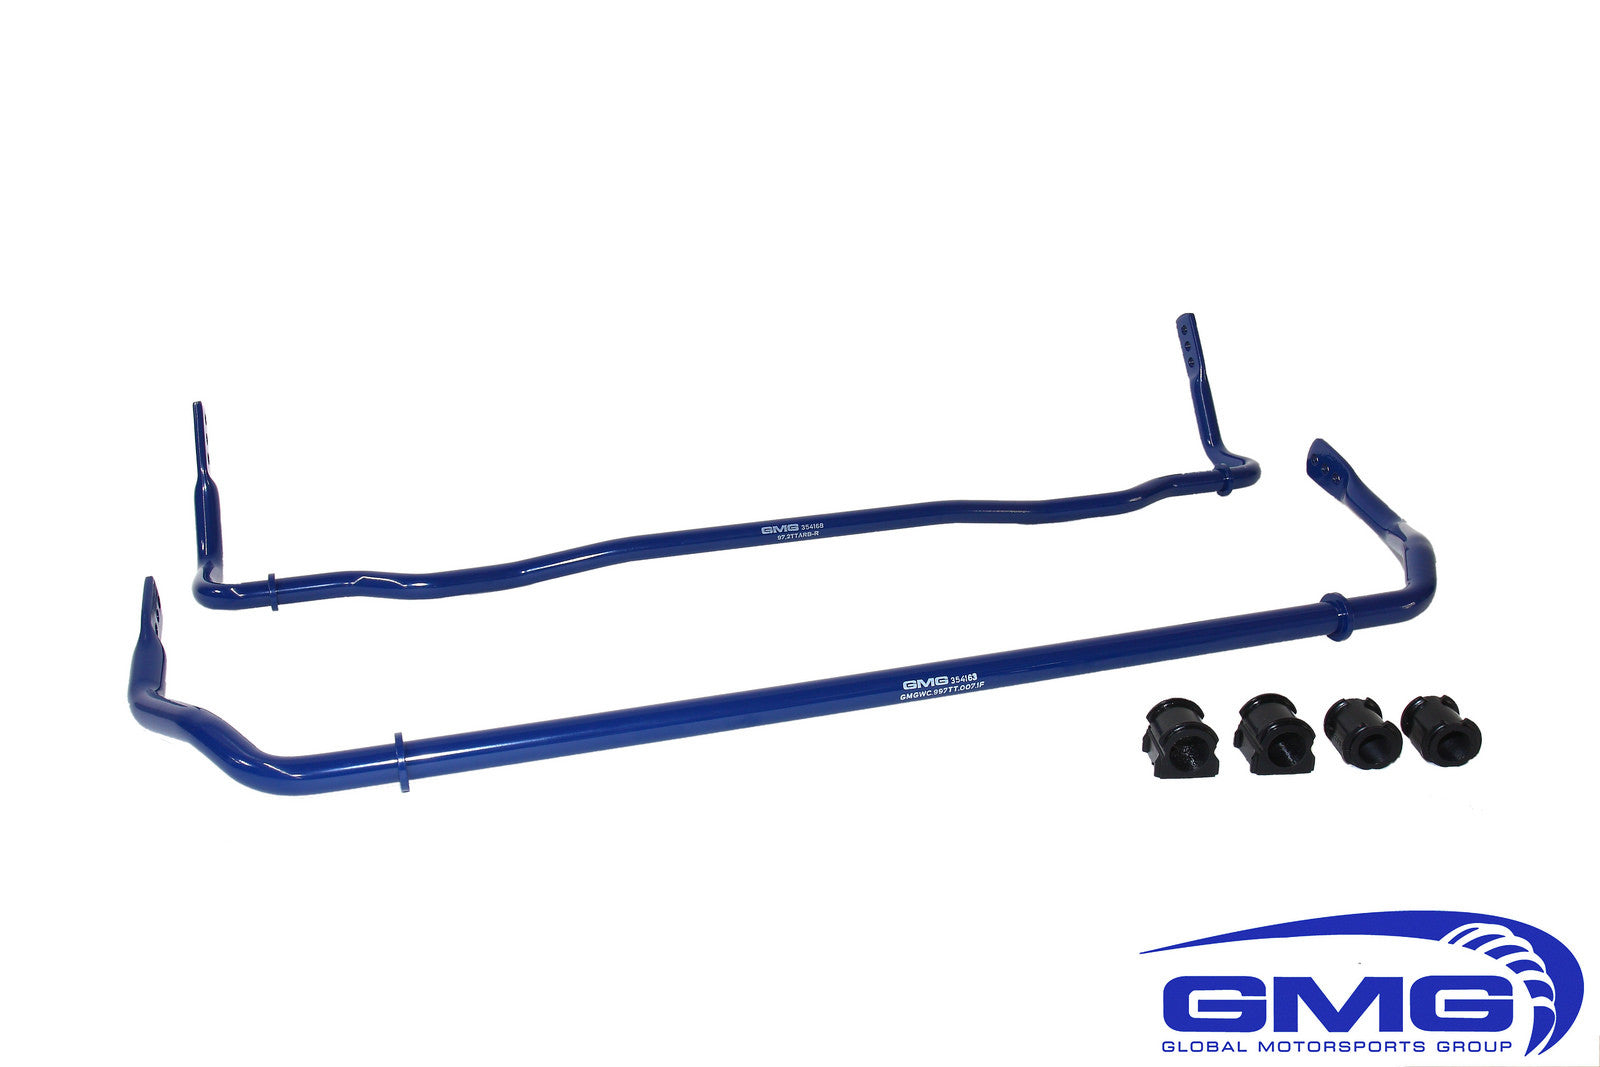 997.2 Turbo GMG WC Swaybar Kit